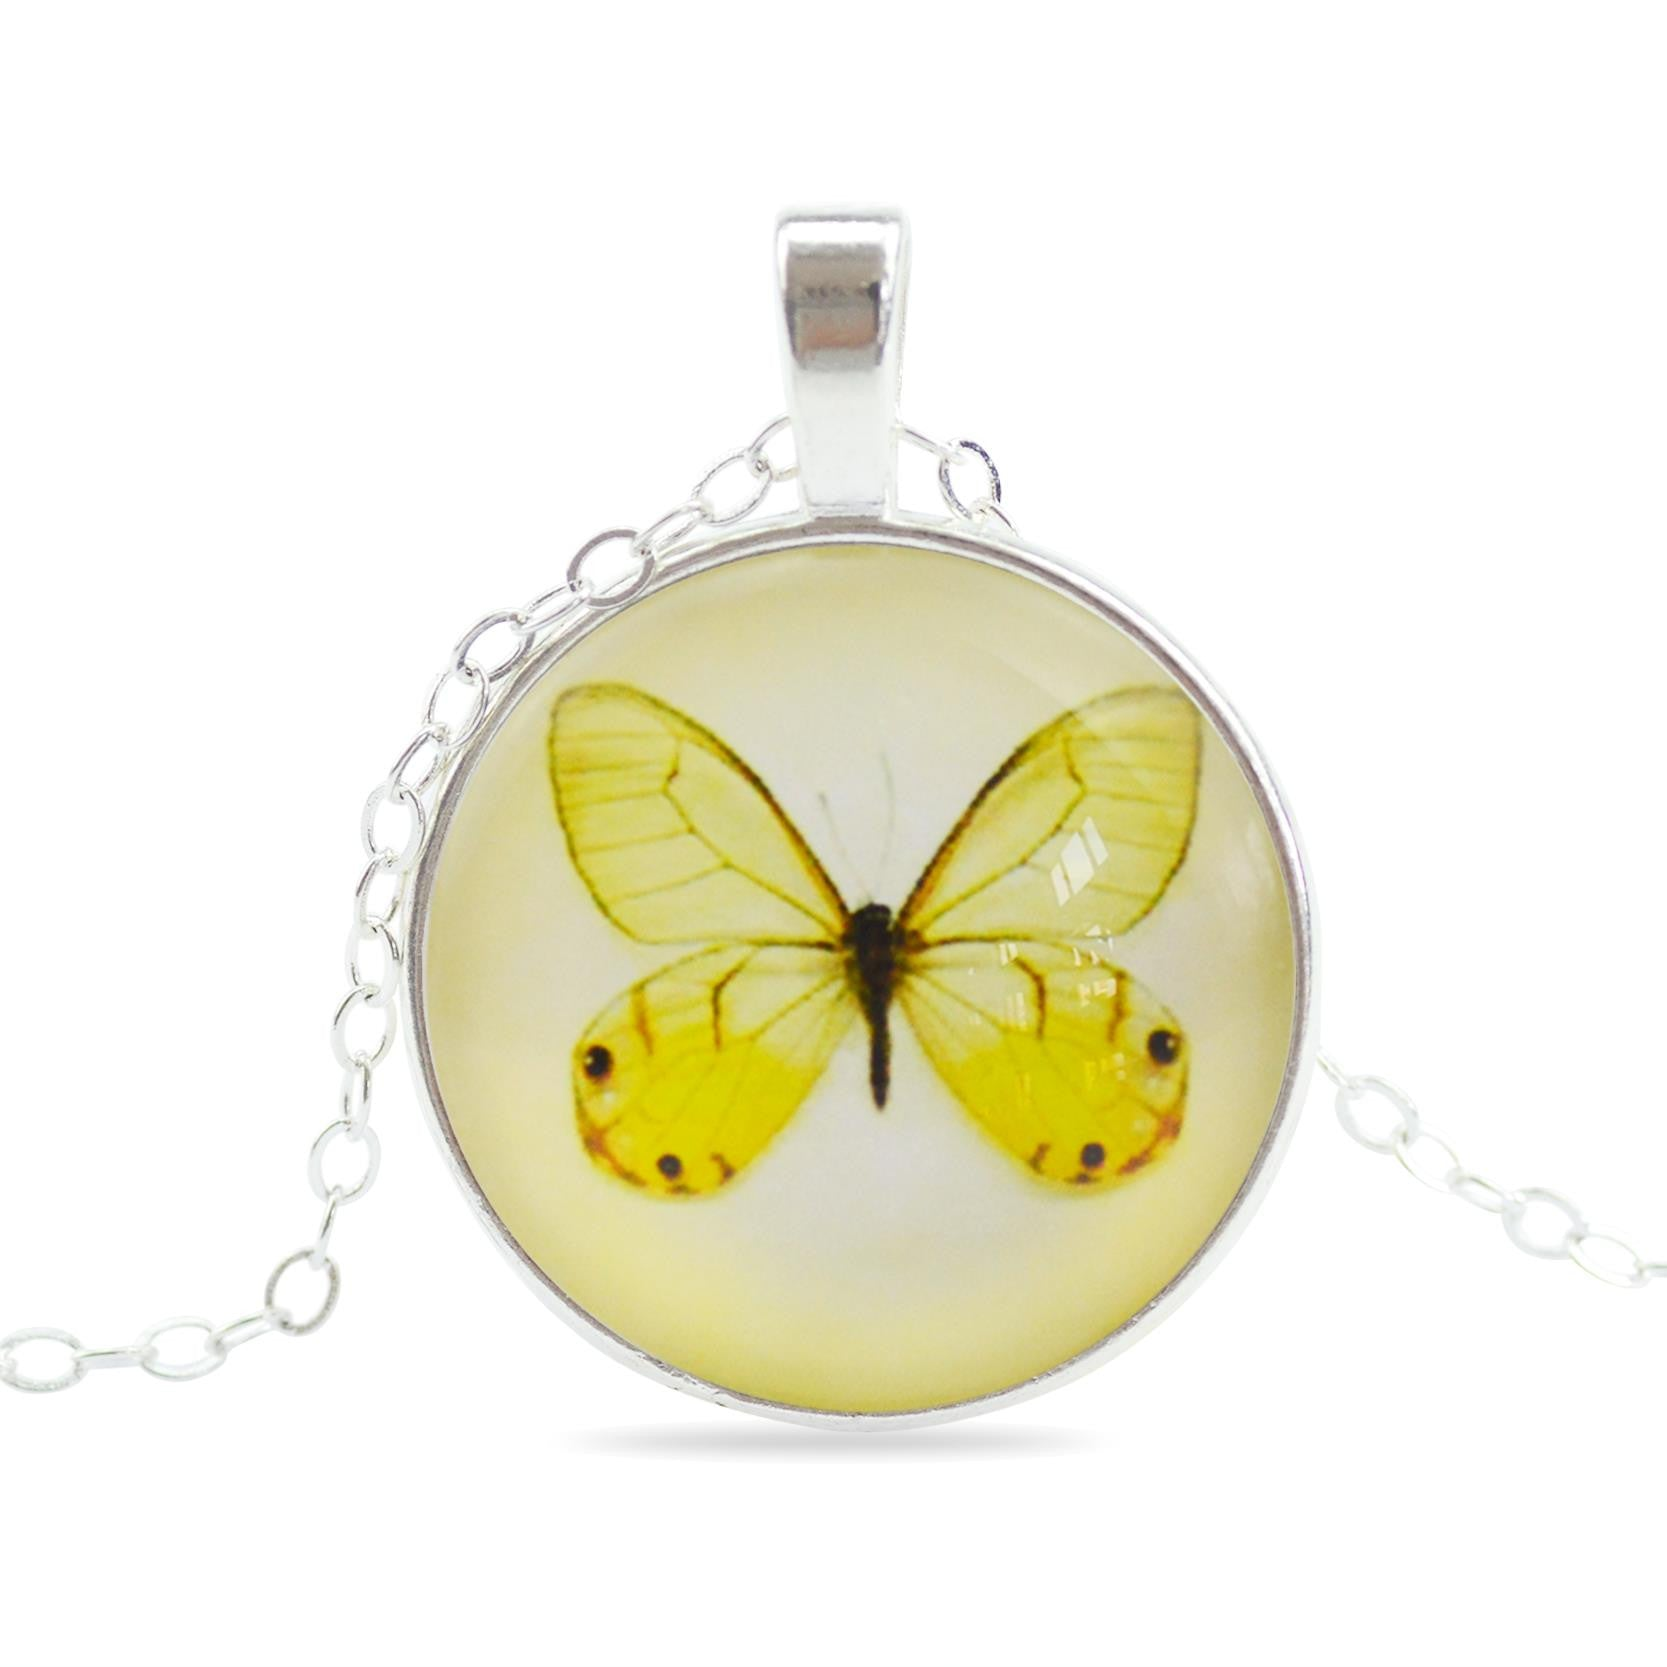 Vintage Glass Cabochon Pendant Necklace in Jewelry Fashion Butterfly Sterling Silver Statement Chain Necklace